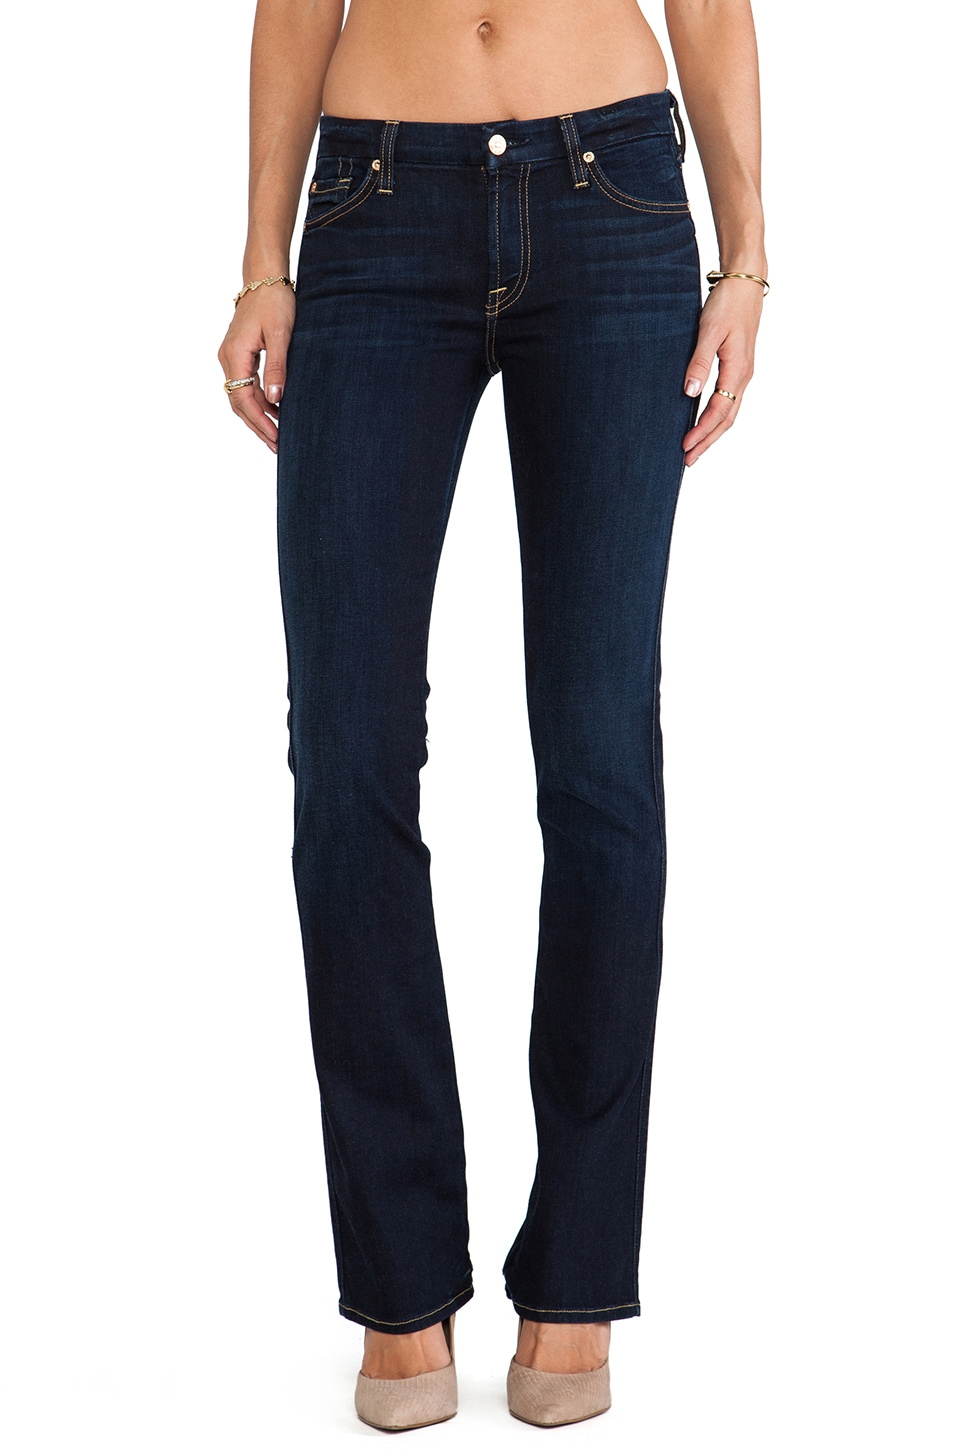 7 For All Mankind The Skinny Bootcut in Slim Illusion Classic Dark Blue